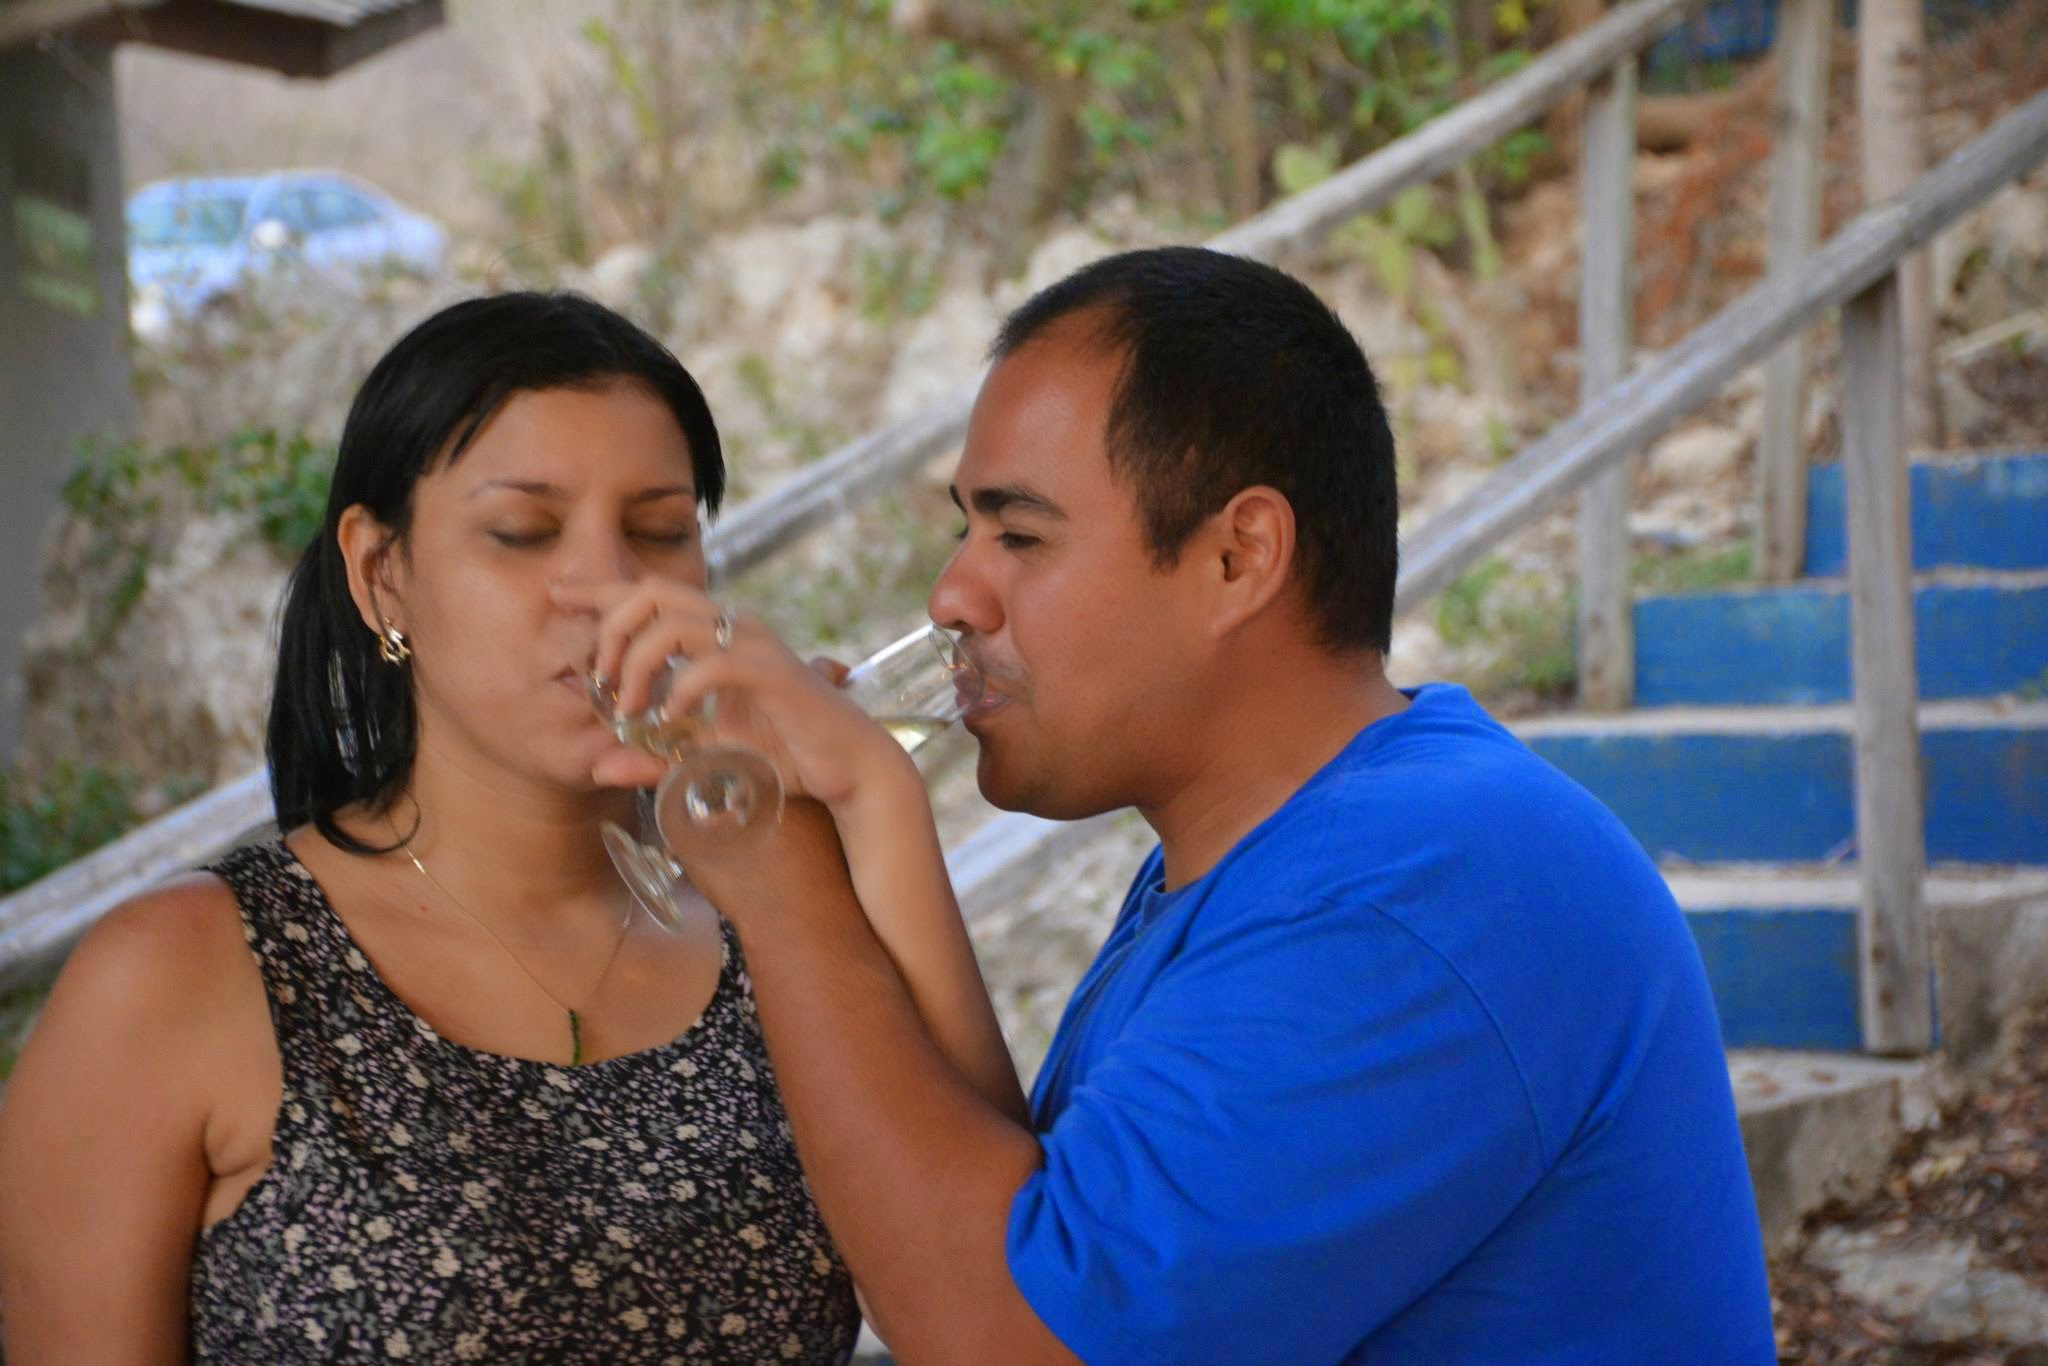 Image 4 of Carlos and Gabby's Proposal on the Island of Curaçao